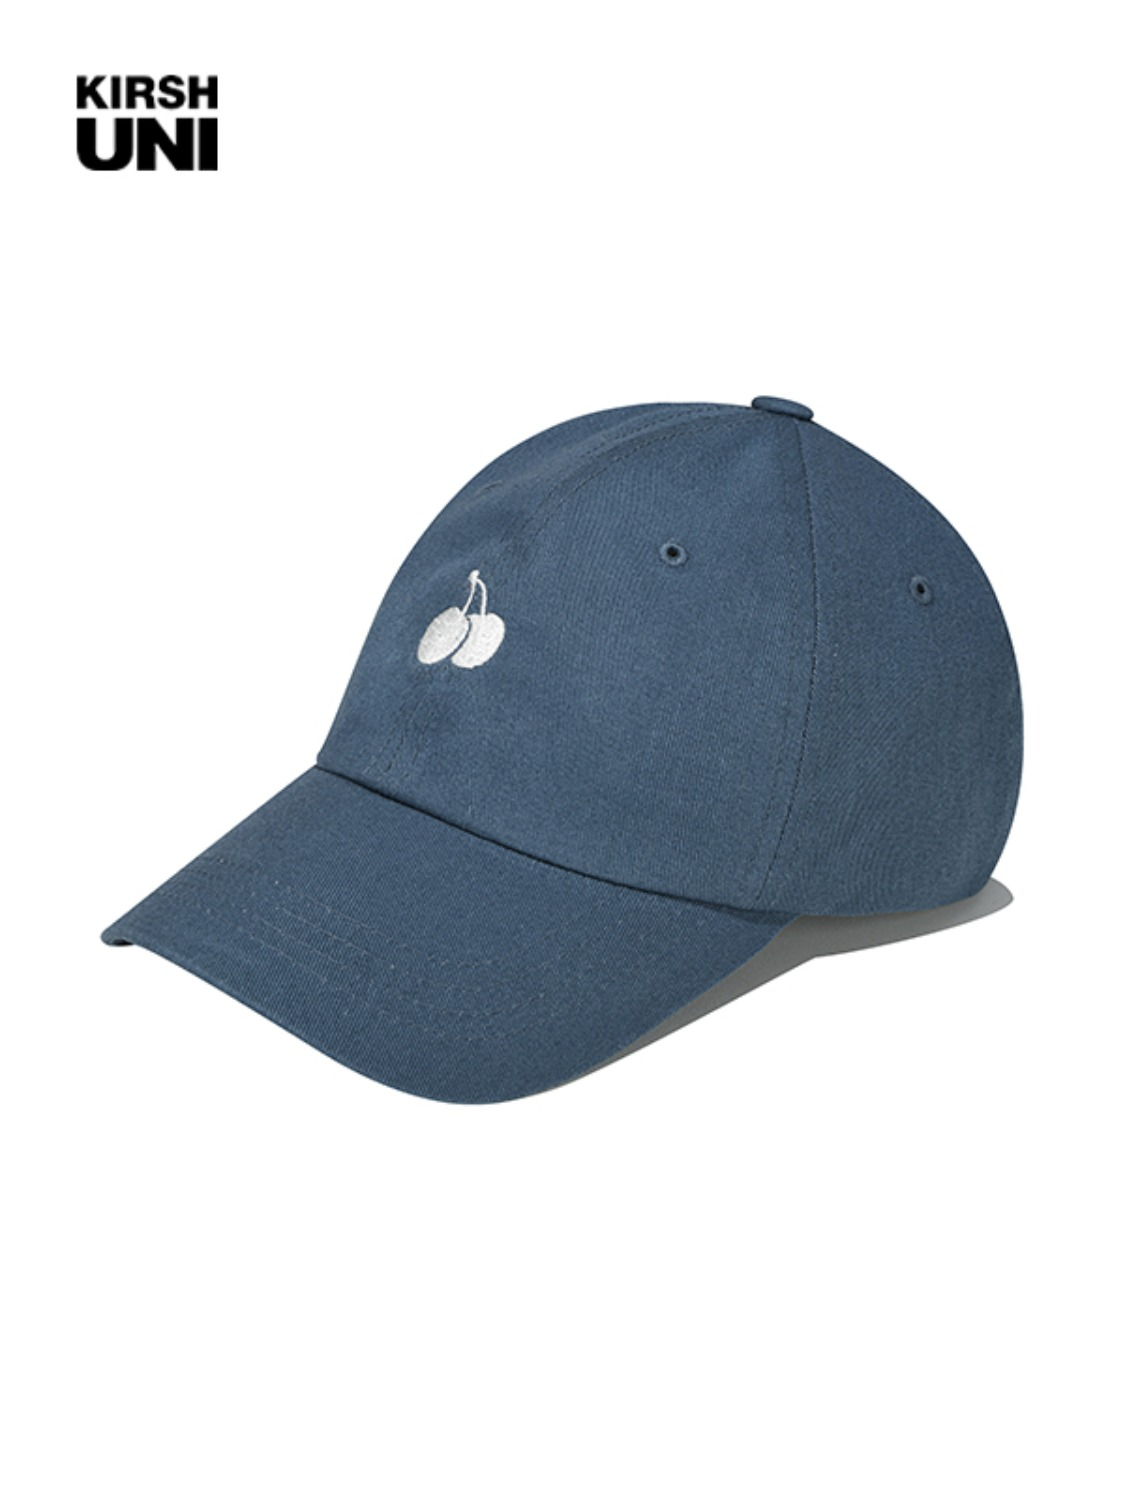 (2월 5일 예약발송)UNI SMALL CHERRY LOGO BALLCAP KS [INDIGO BLUE]